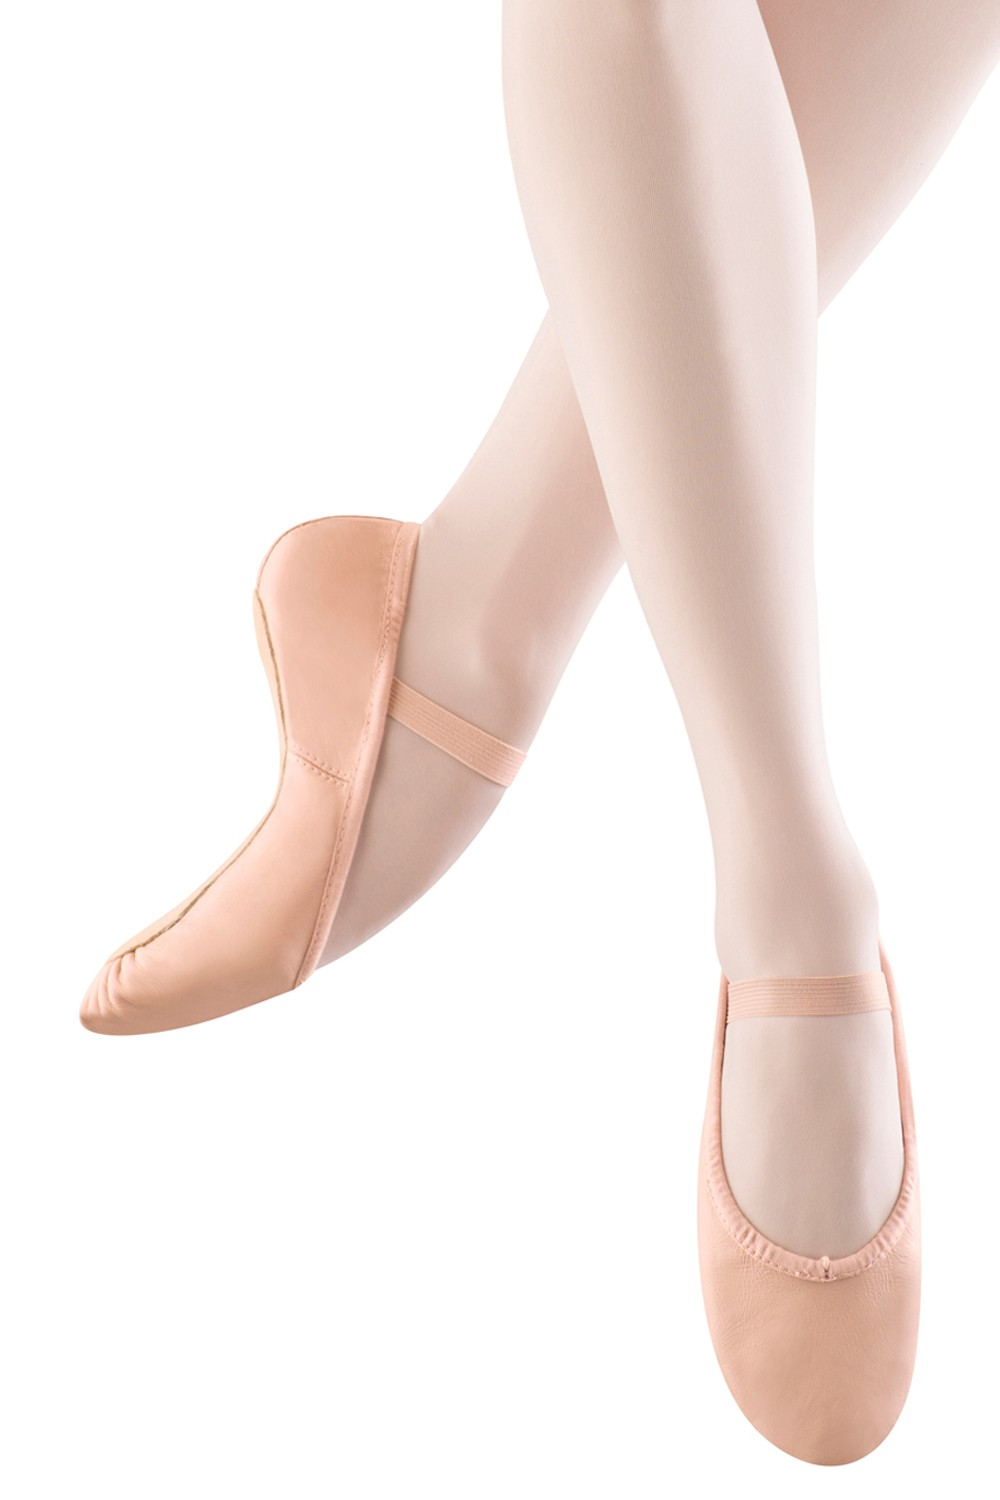 Dansoft   Women's Ballet Shoes